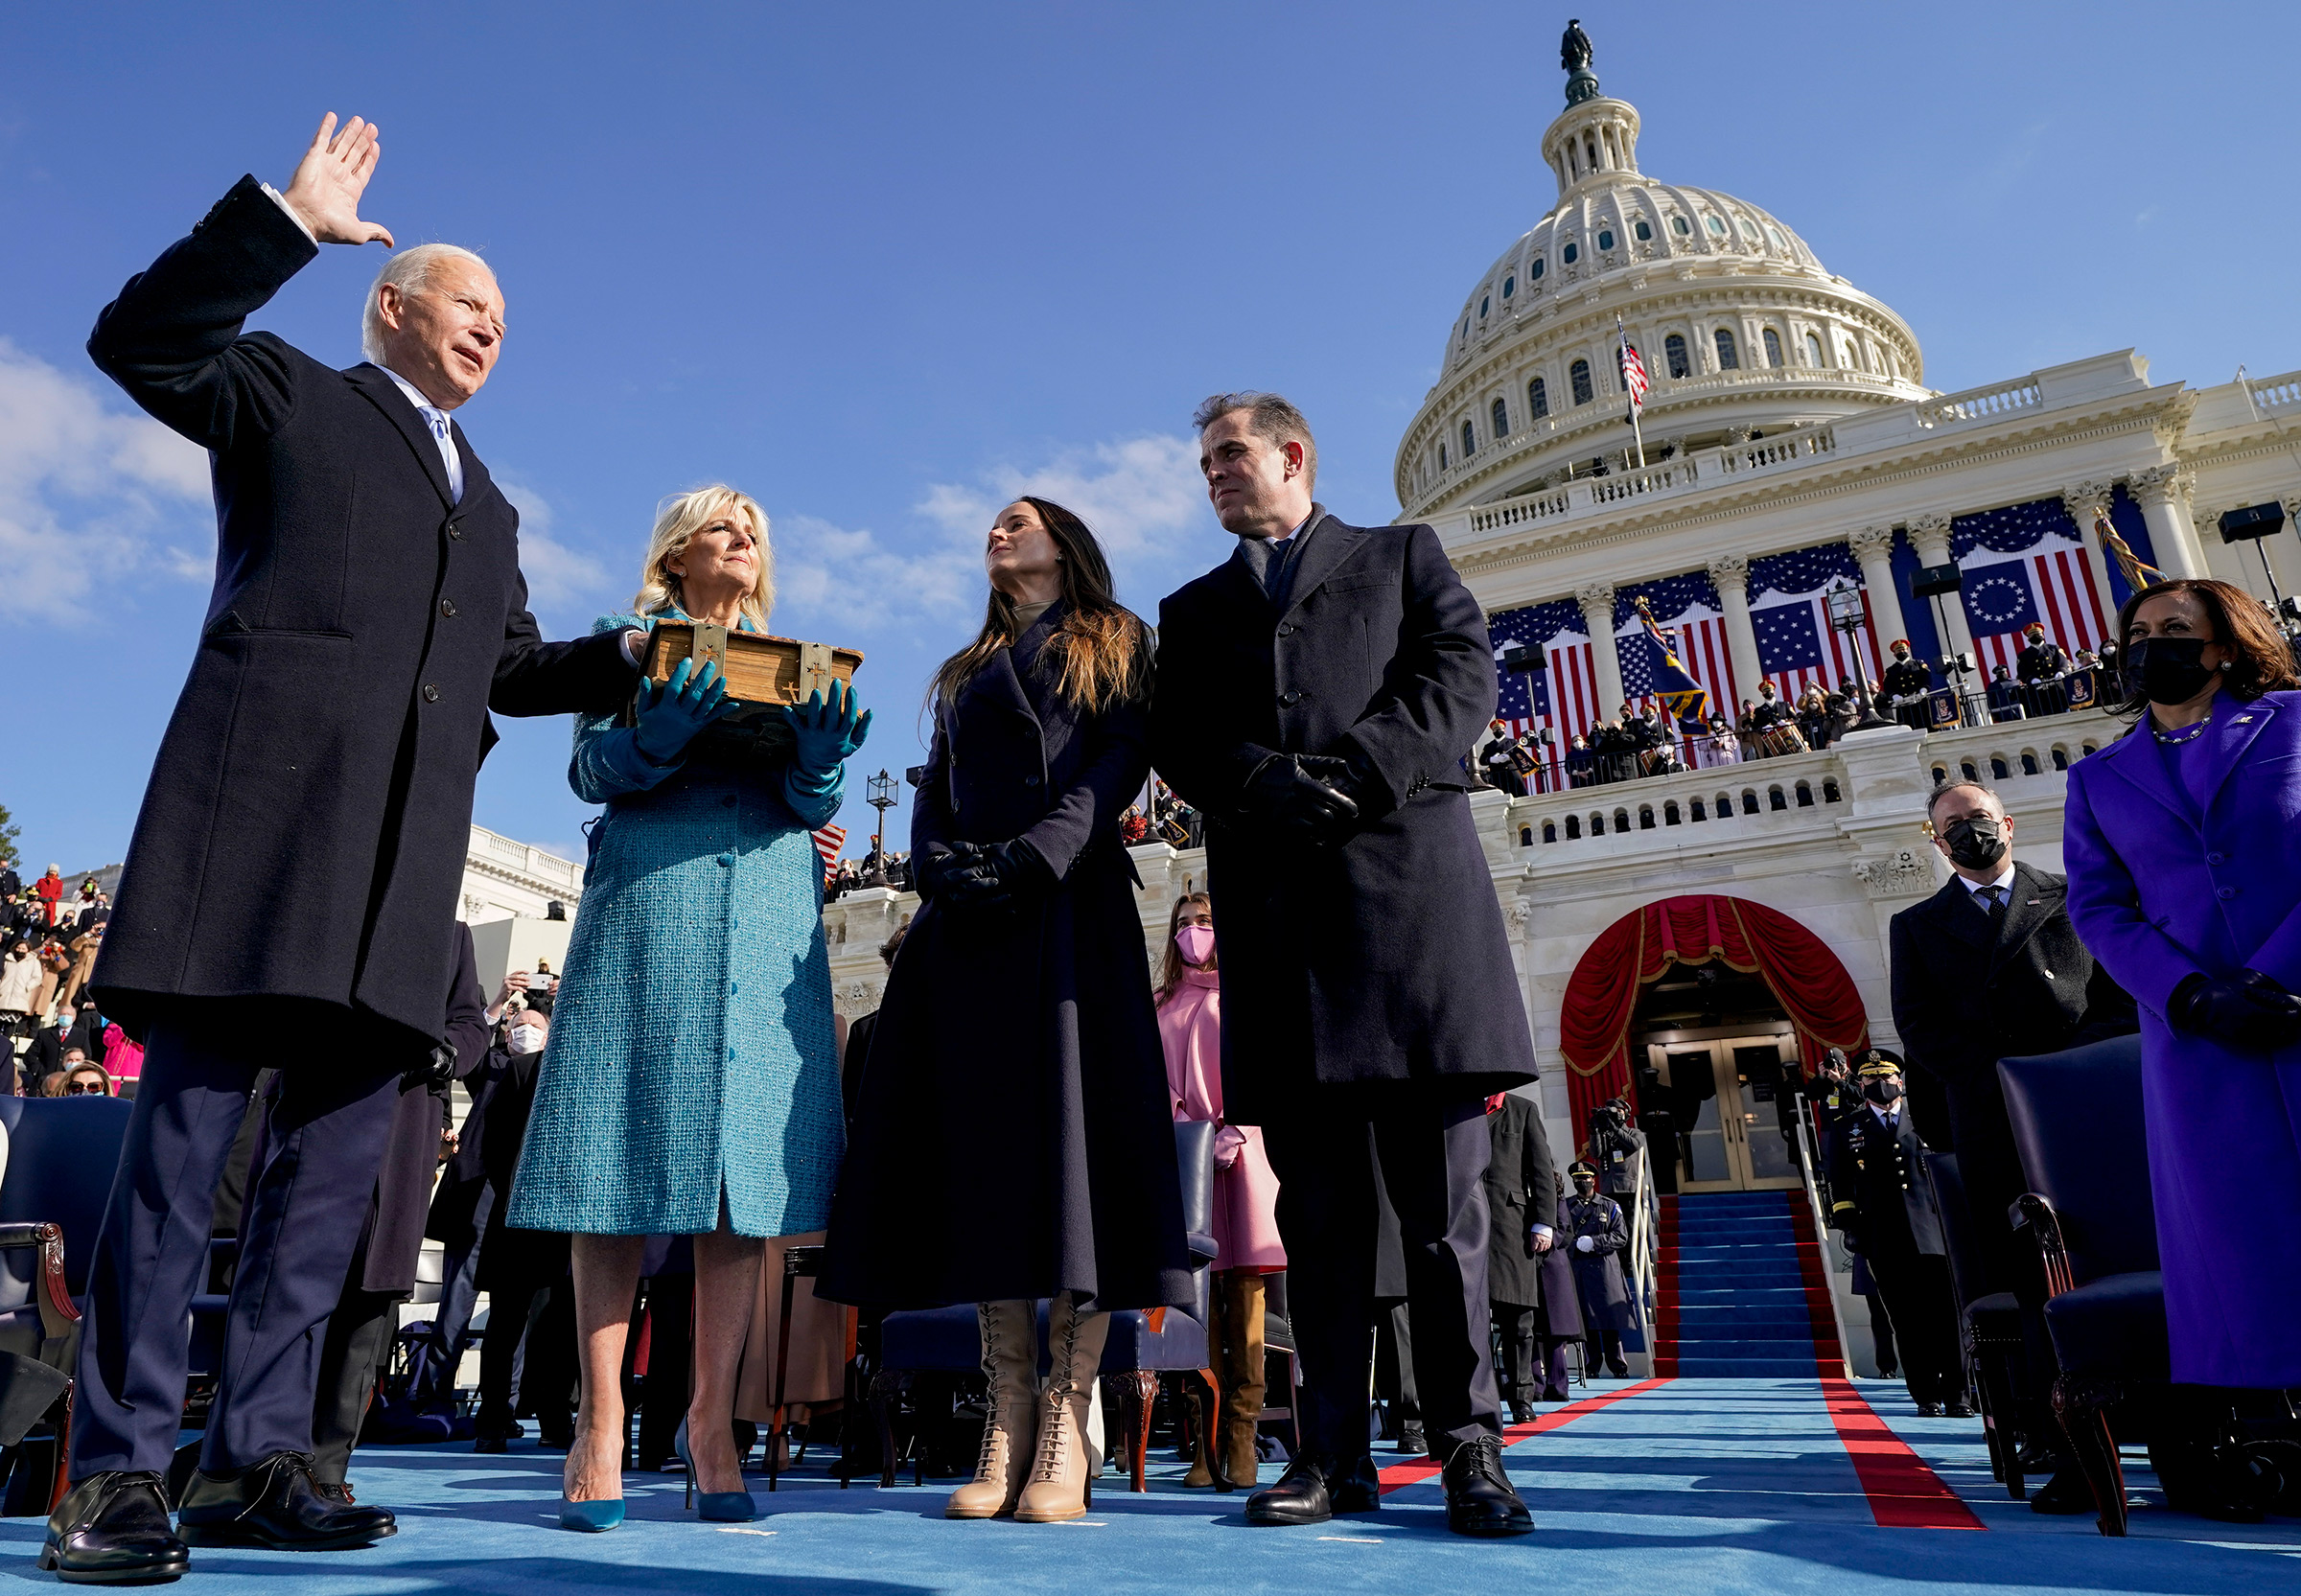 Joe Biden is sworn in as the 46th president of the United States by Chief Justice John Roberts as Jill Biden holds the Bible.